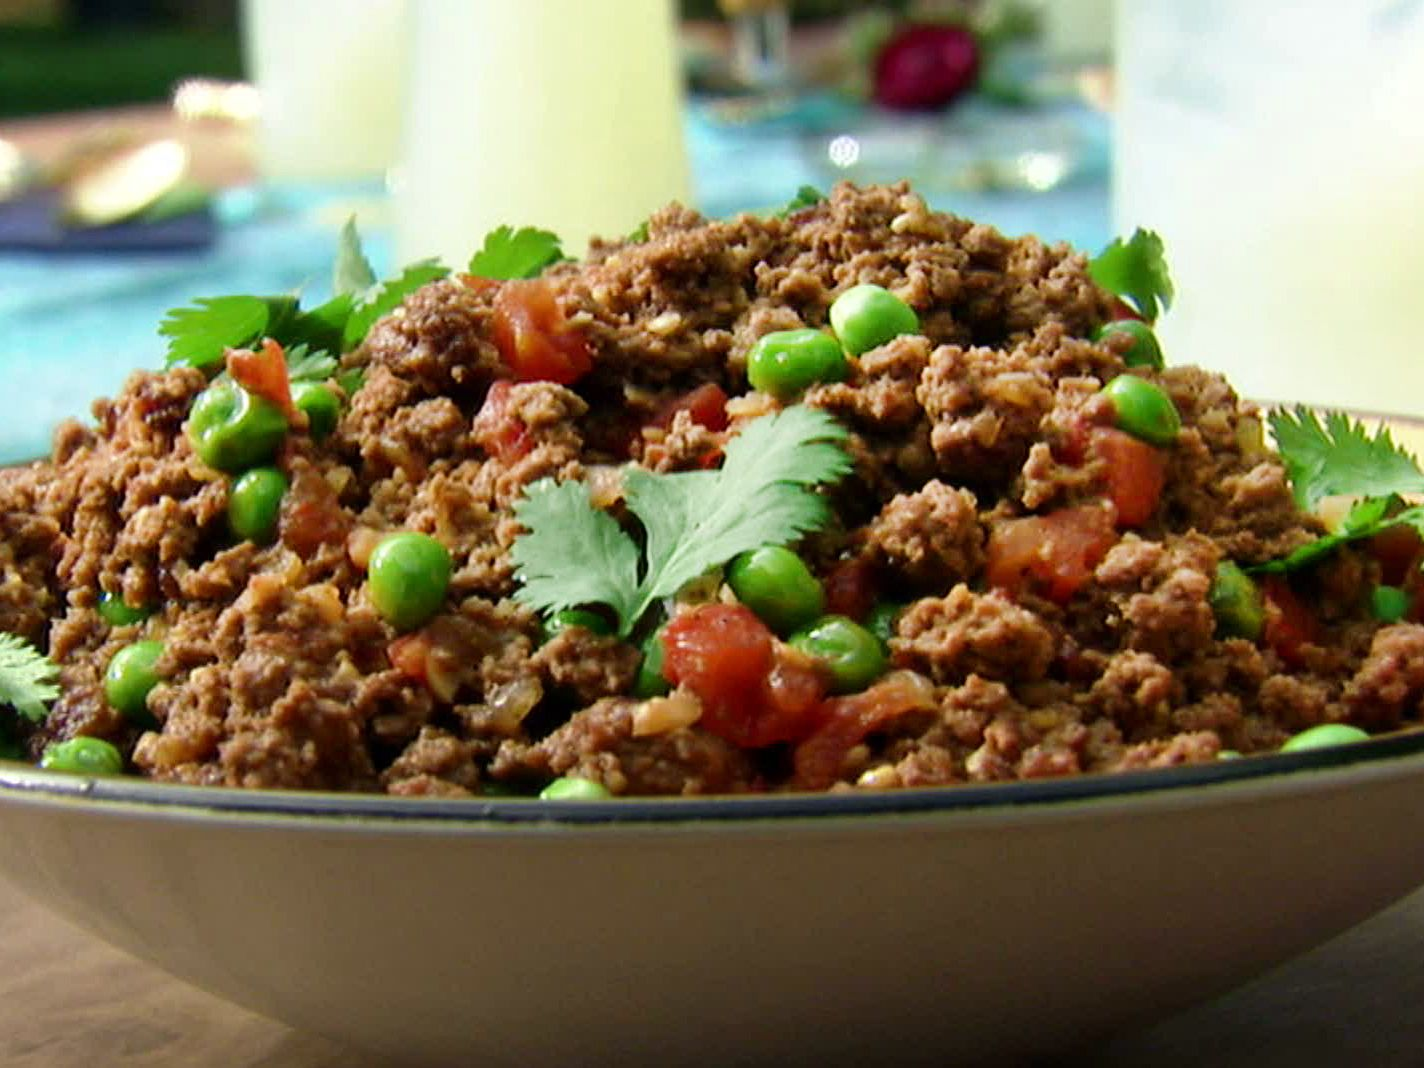 Kheema Indian Ground Beef With Peas Recipe Food Network Recipes Pea Recipes Keema Recipes